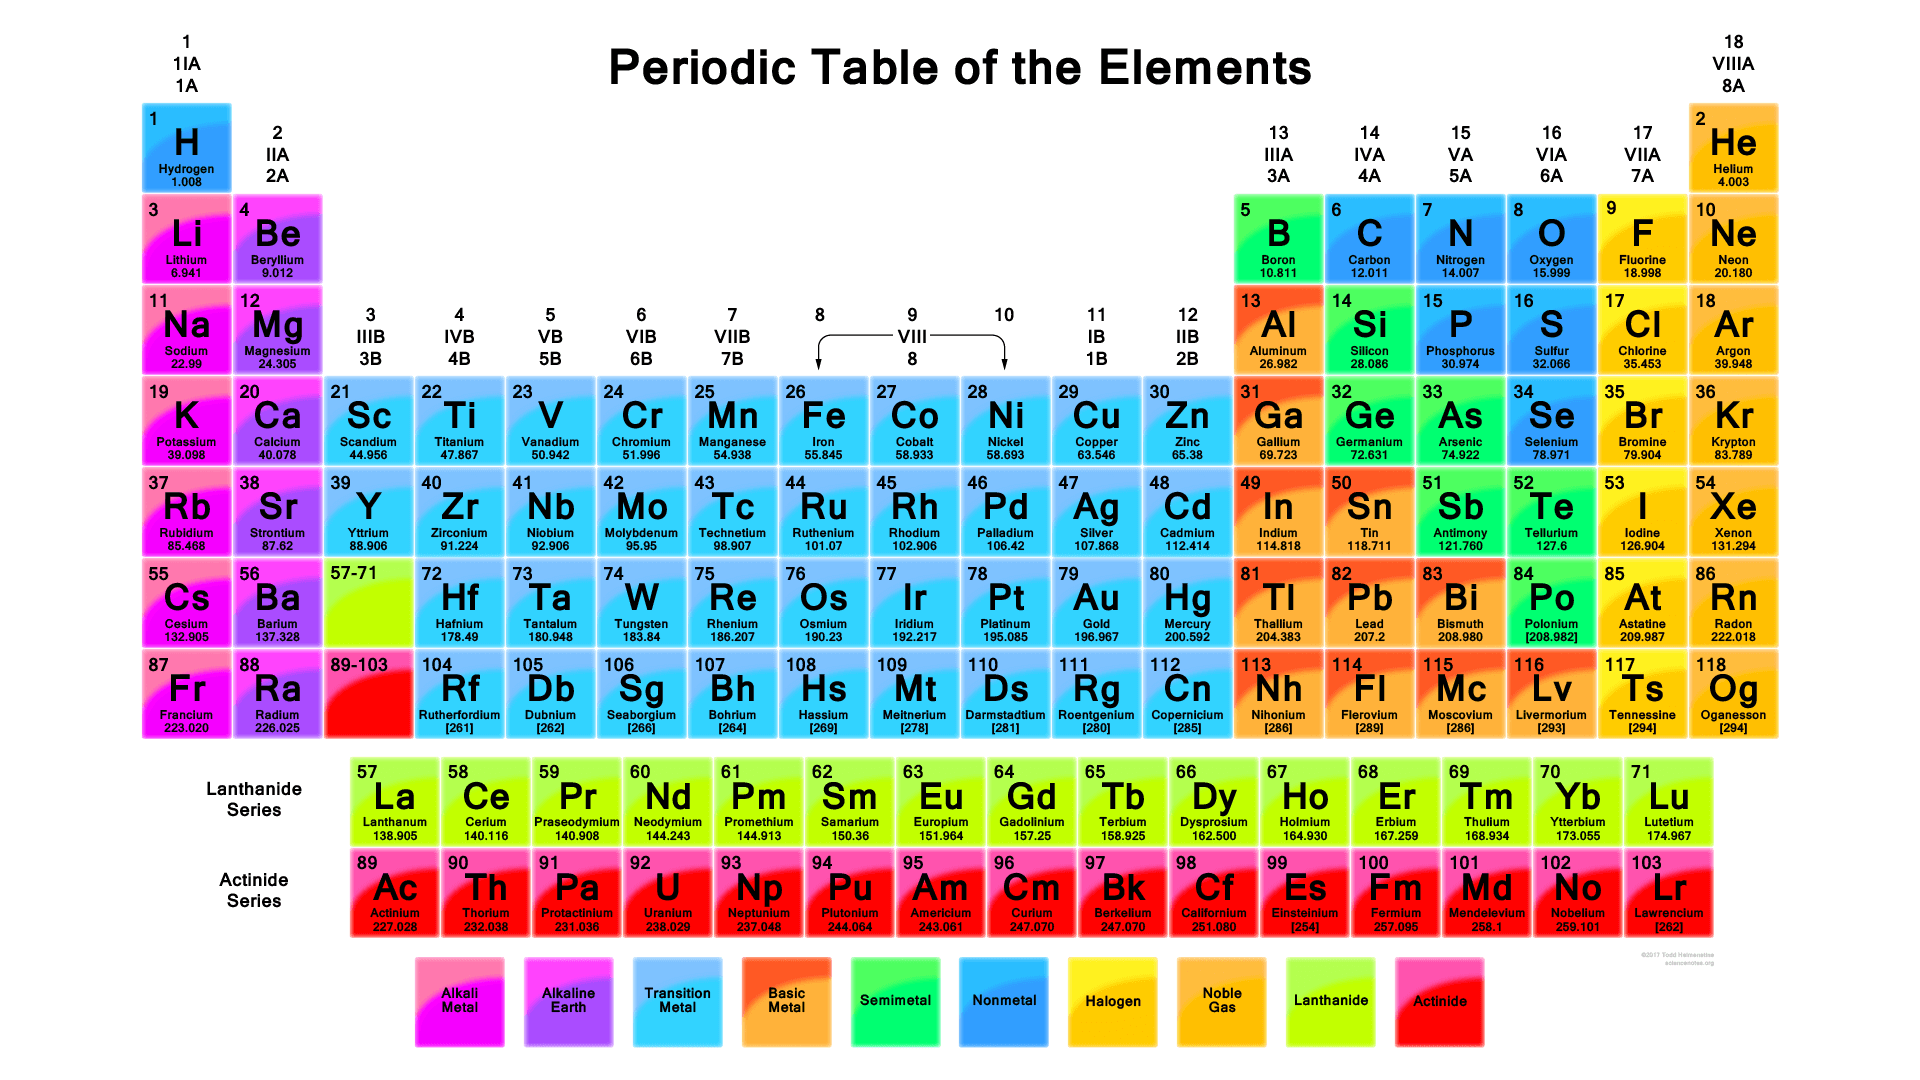 Periodic table pdf 2017 edition with 118 elements vibrant periodic table with 118 elements gamestrikefo Gallery